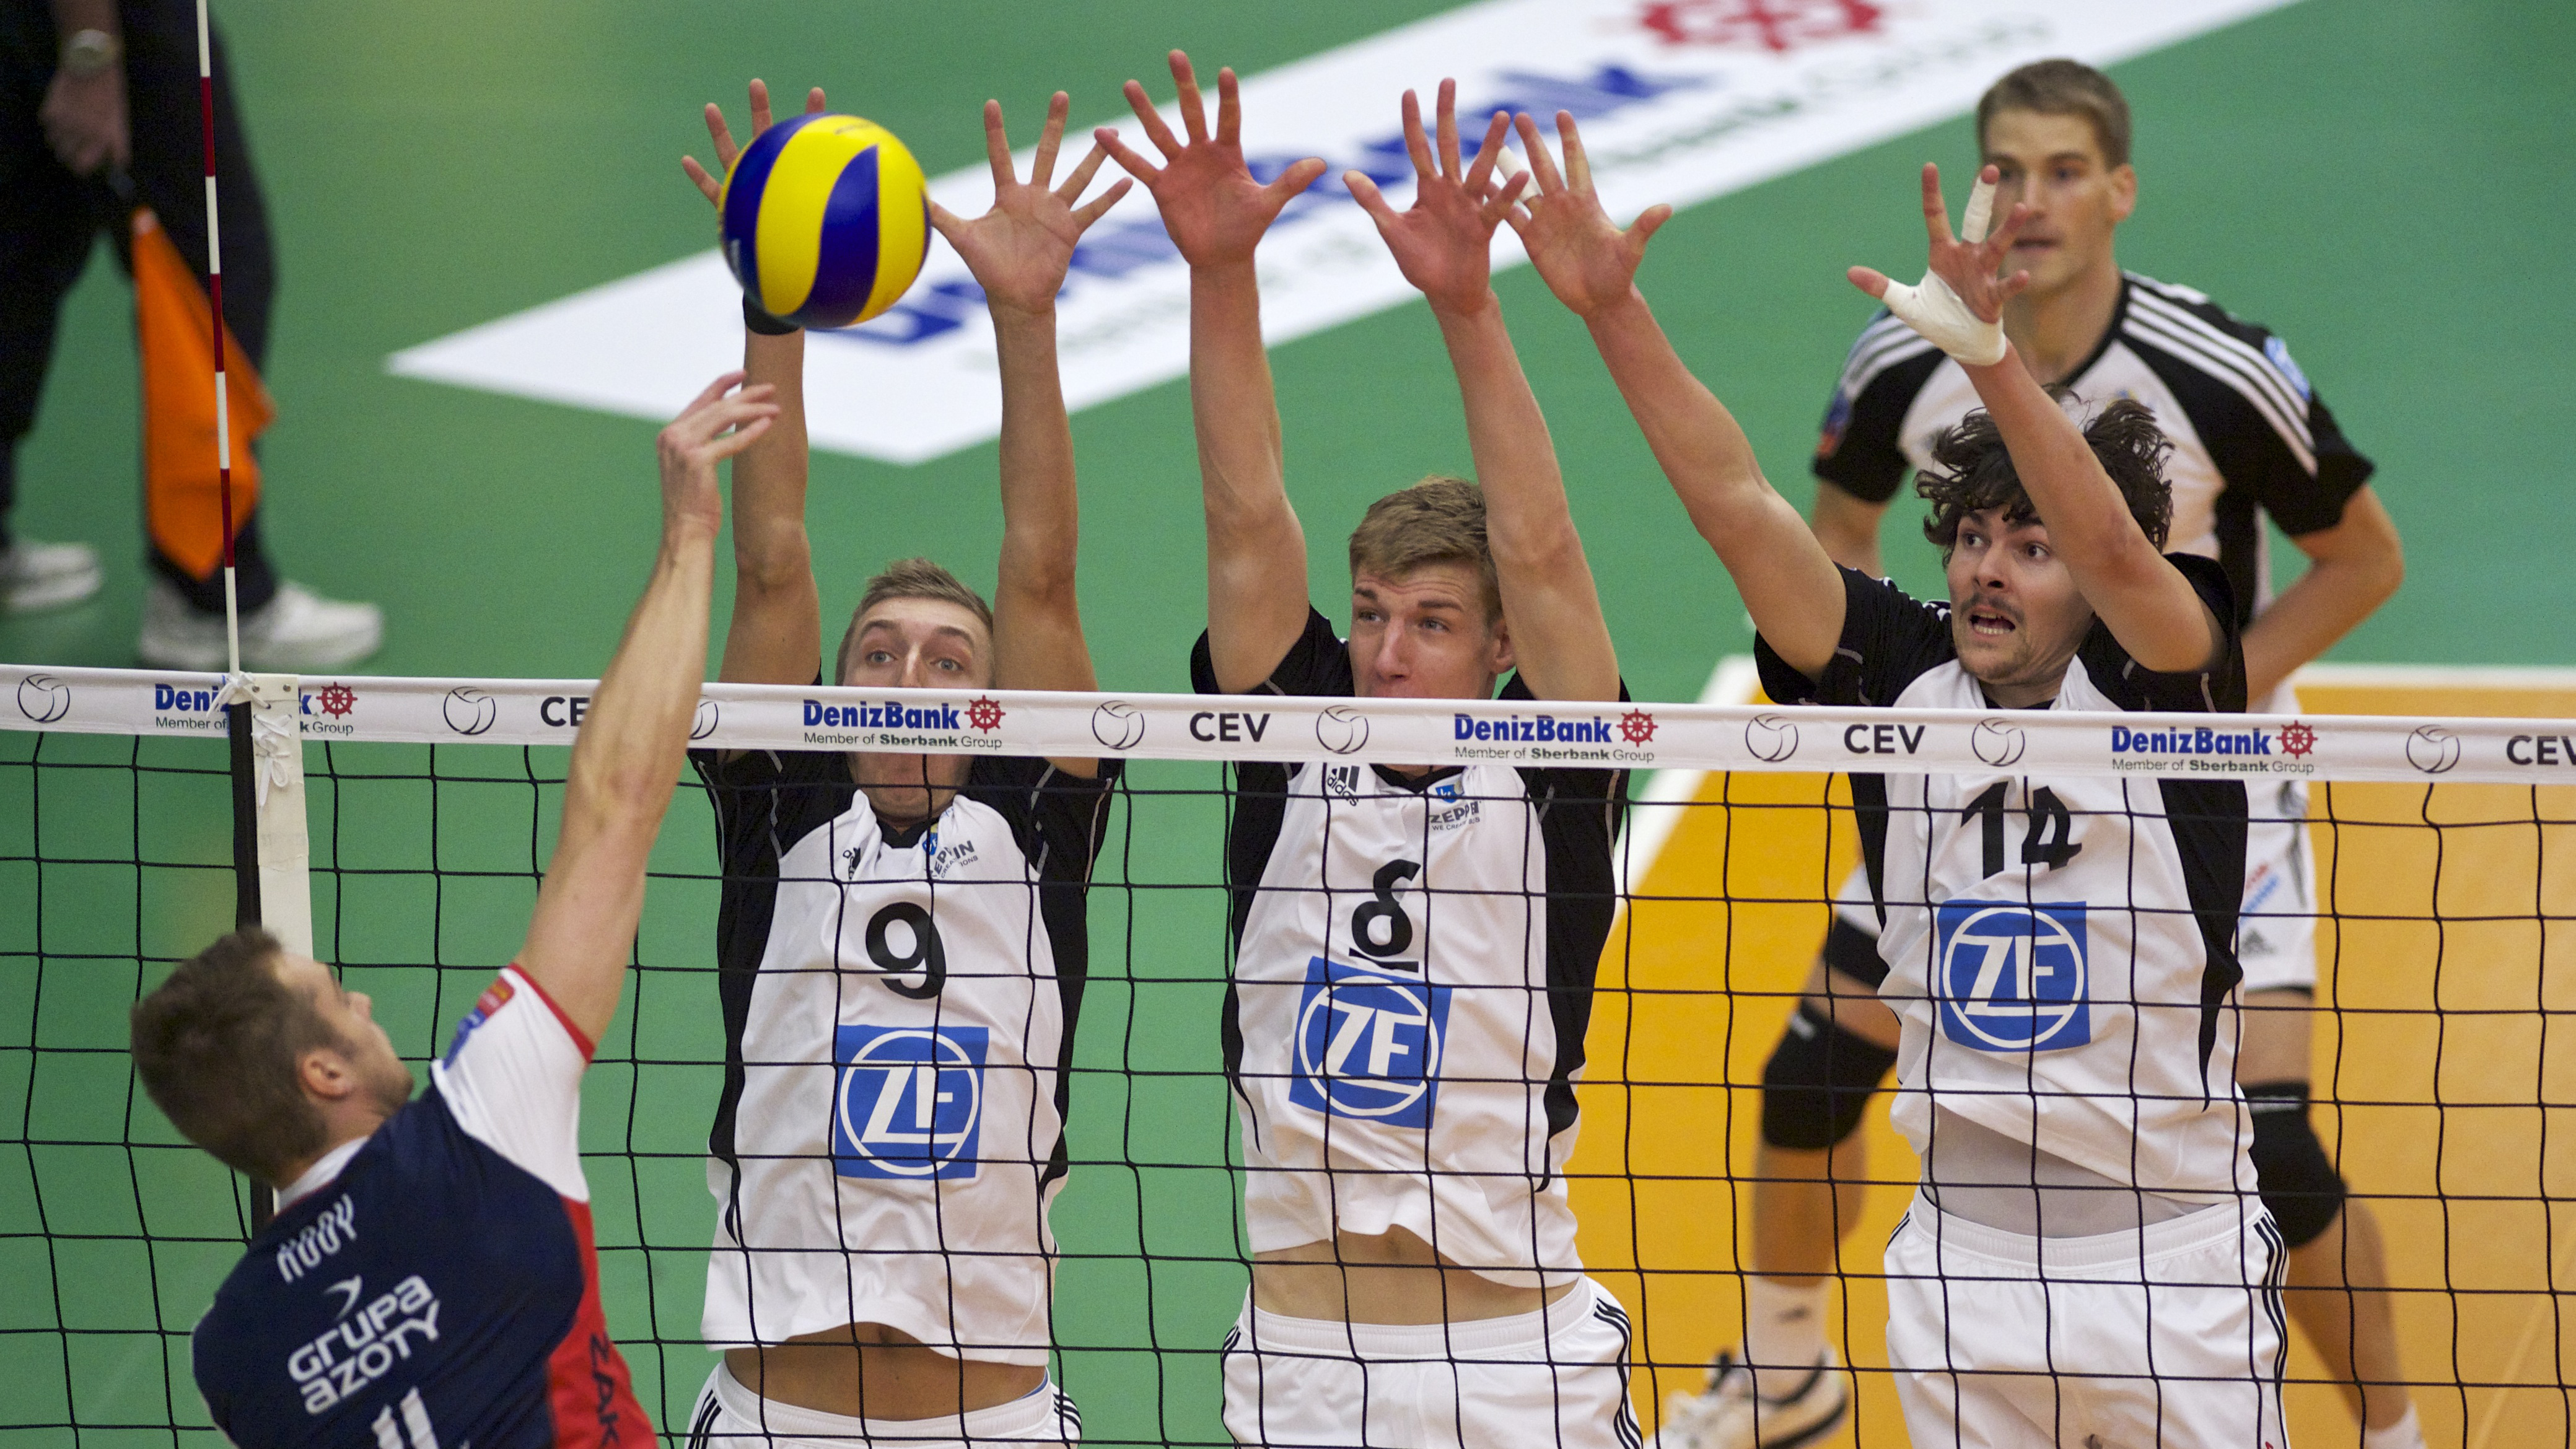 Sporza: Champions League Volleybal